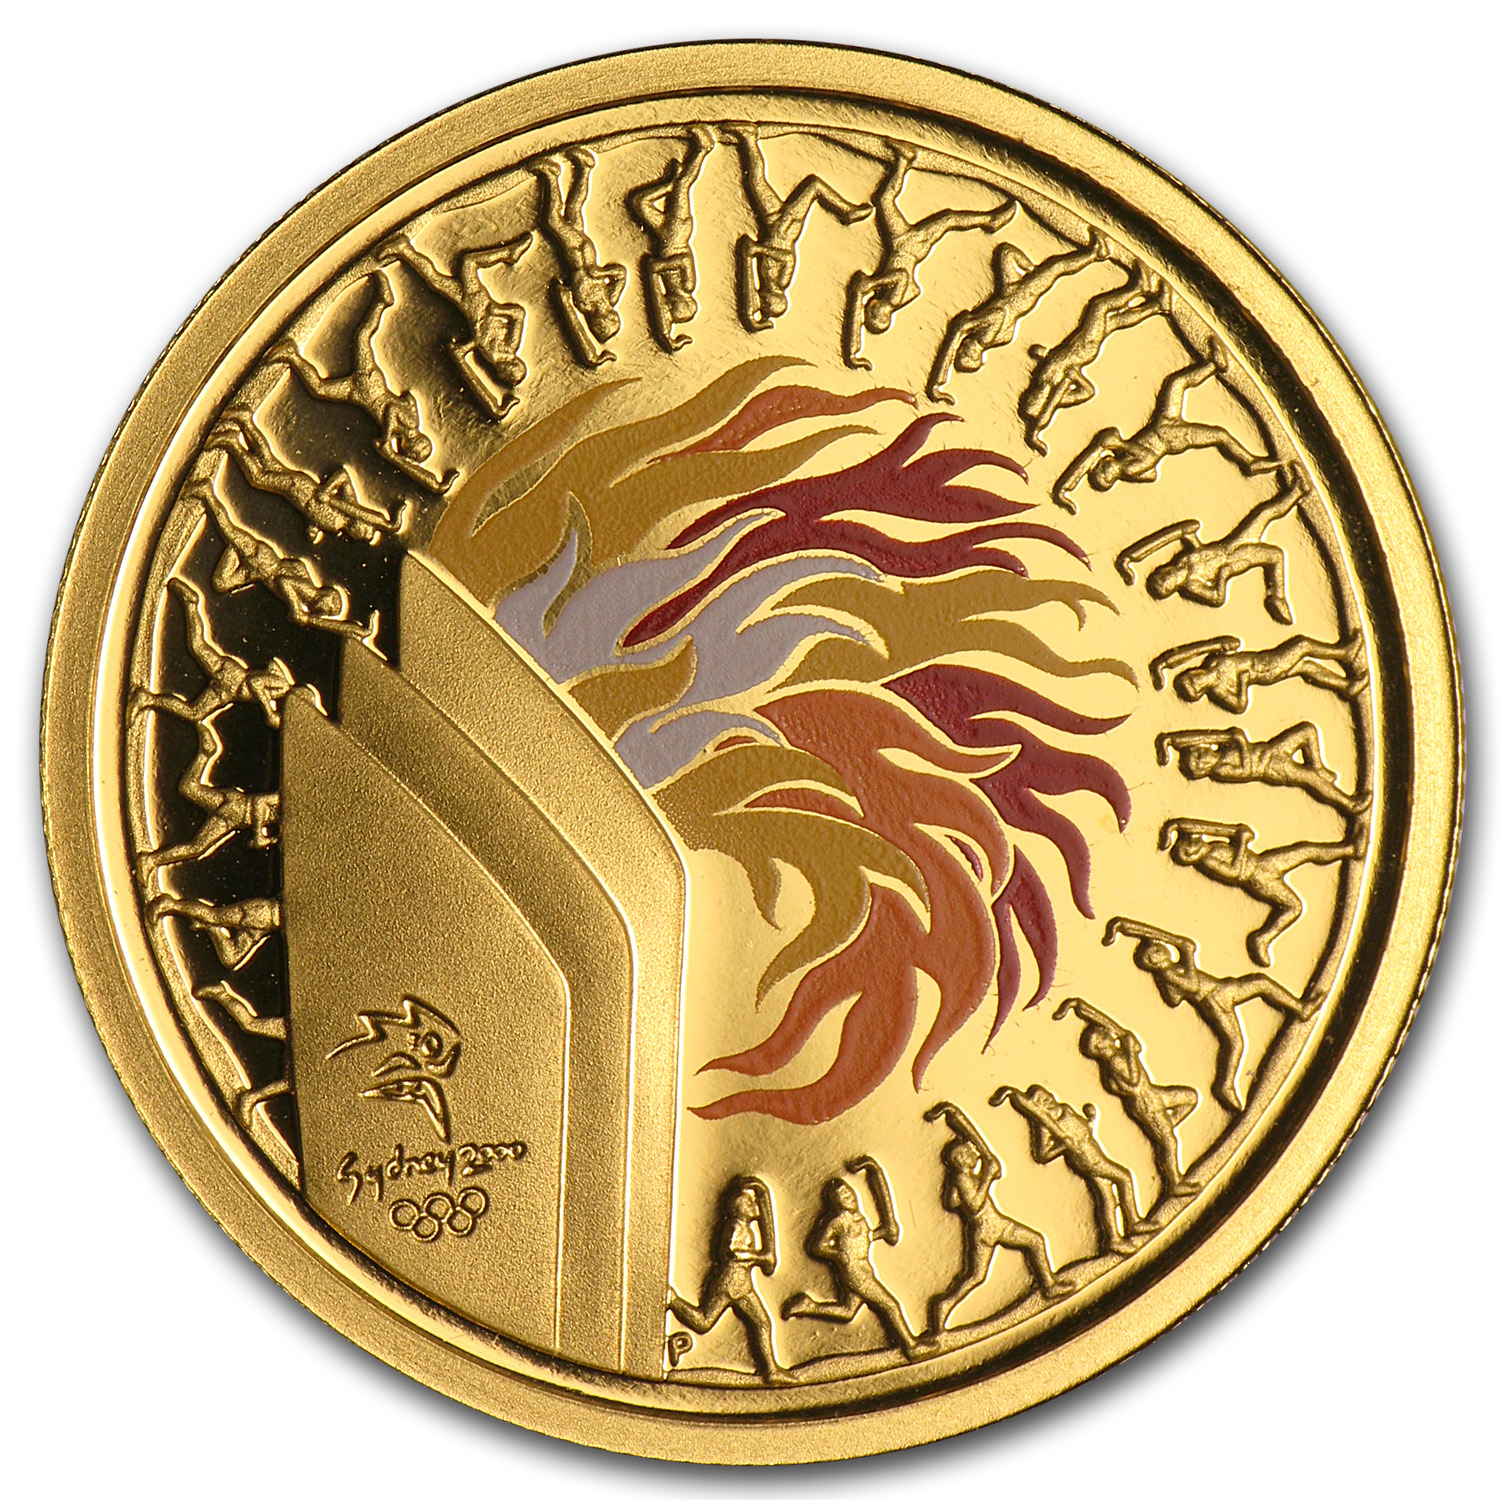 2000 Gold $100 Sydney Olympics Torch Proof (In Capsule)